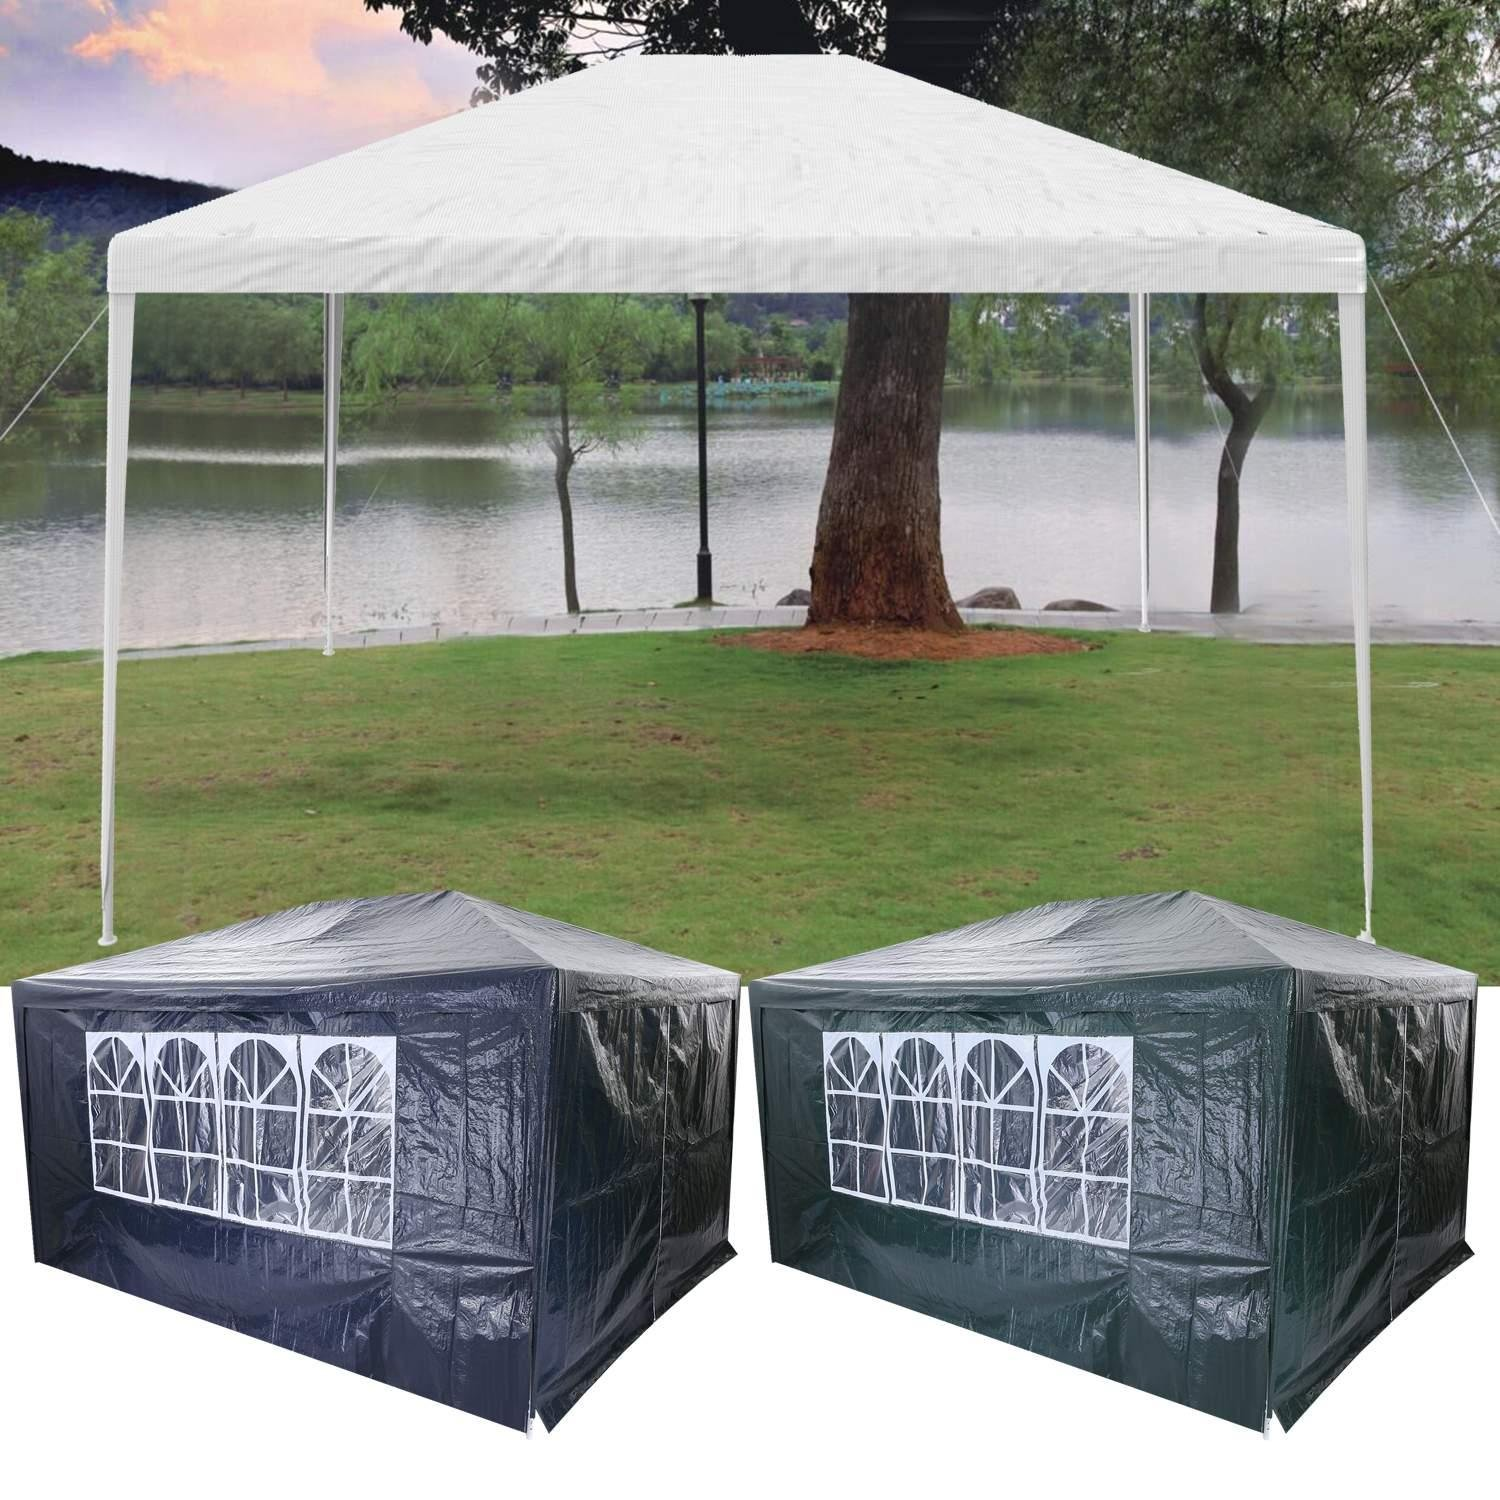 Cooshional 3 x 4m Heavy Duty Outdoor Marquee Garden Gazebo Waterproof Wedding Marquee Party Tent Event Shelter (Blue)